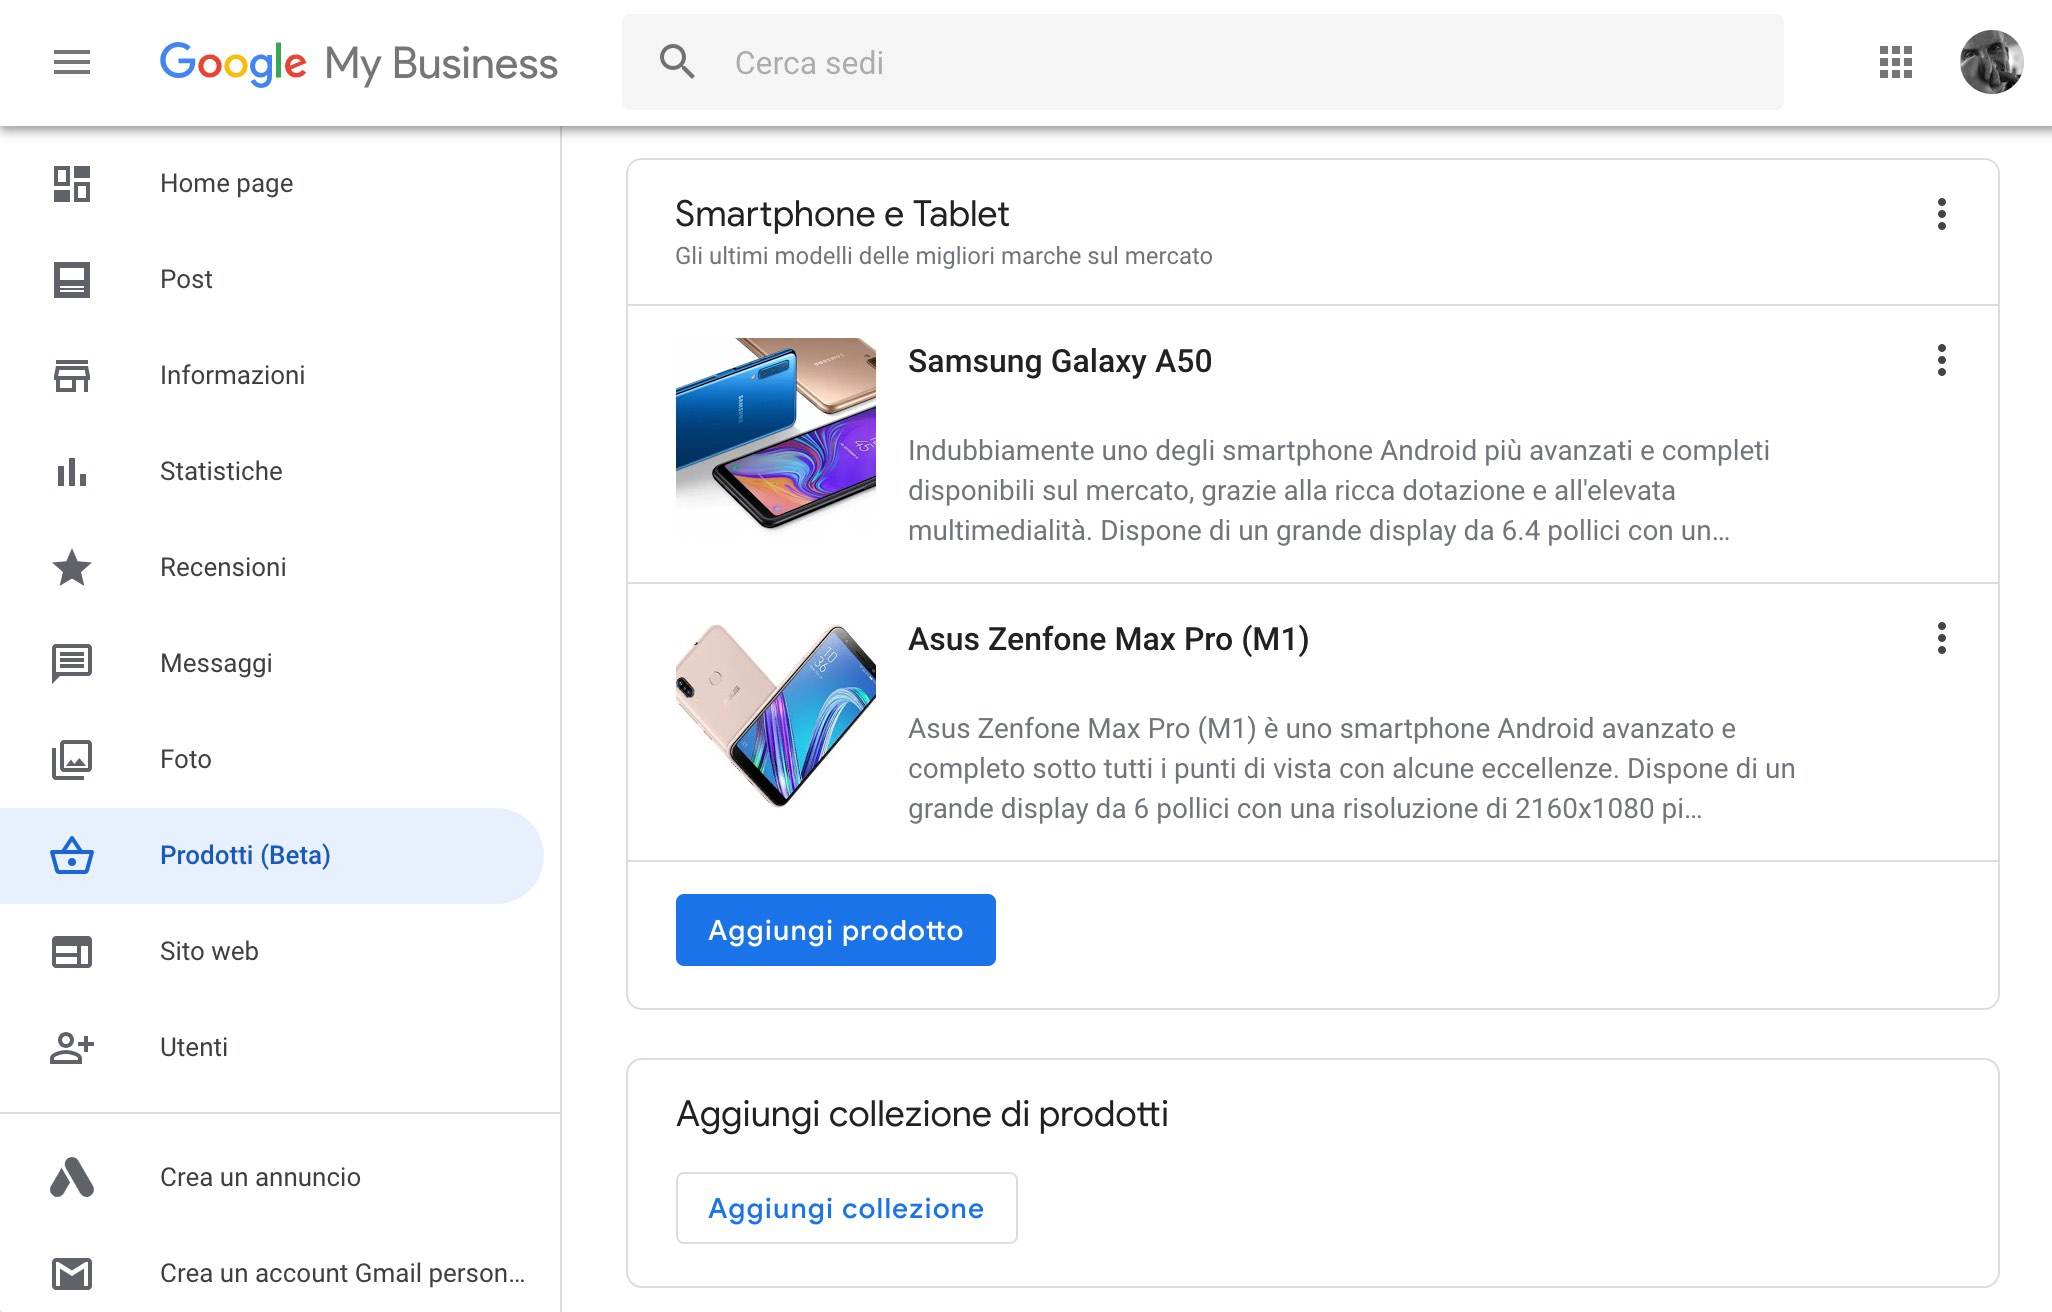 Dashboard web di Google My Business - editor dei prodotti